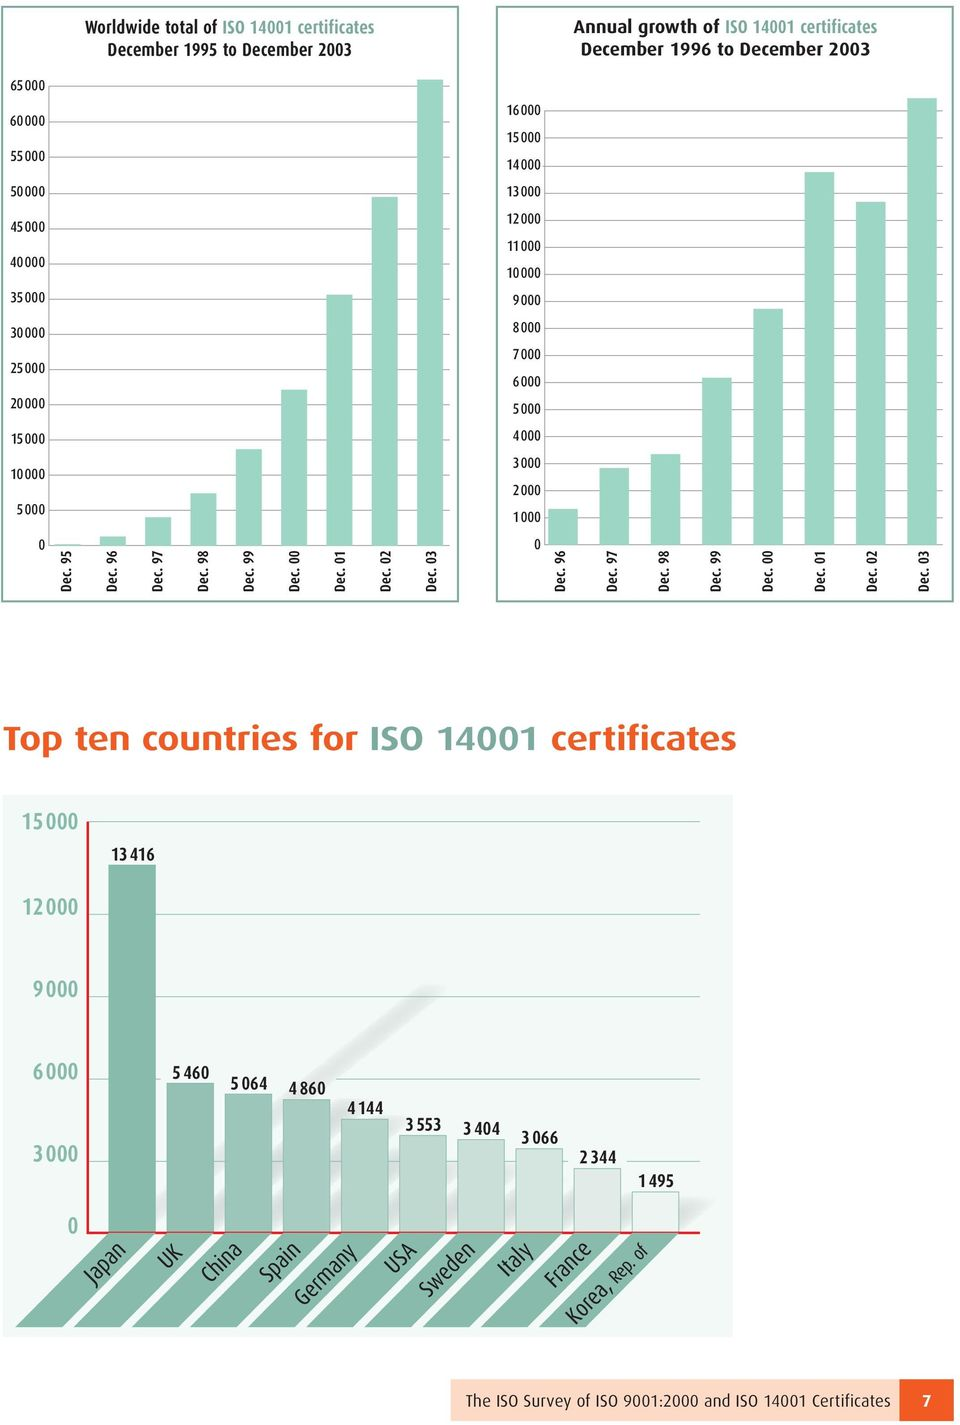 95 96 97 98 99 00 01 02 03 0 96 97 98 99 00 01 02 03 Top ten countries for ISO 14001 certificates 15000 13 416 1 9000 6000 3000 5 460 5 064 4 860 4 144